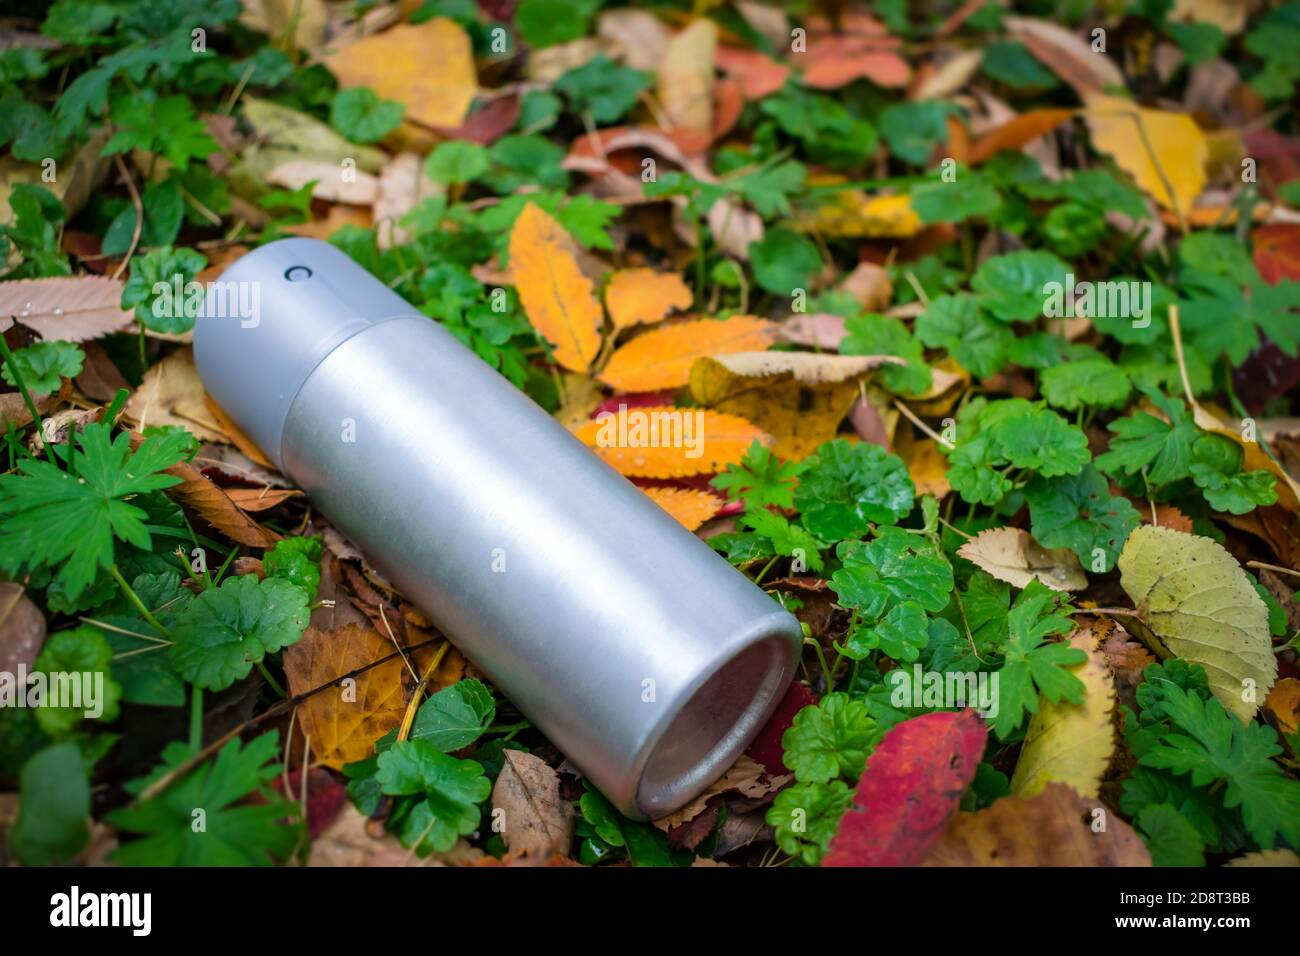 Trash in the form of an antiperspirant spray thrown on the lawn in the autumn foliage Stock Photo